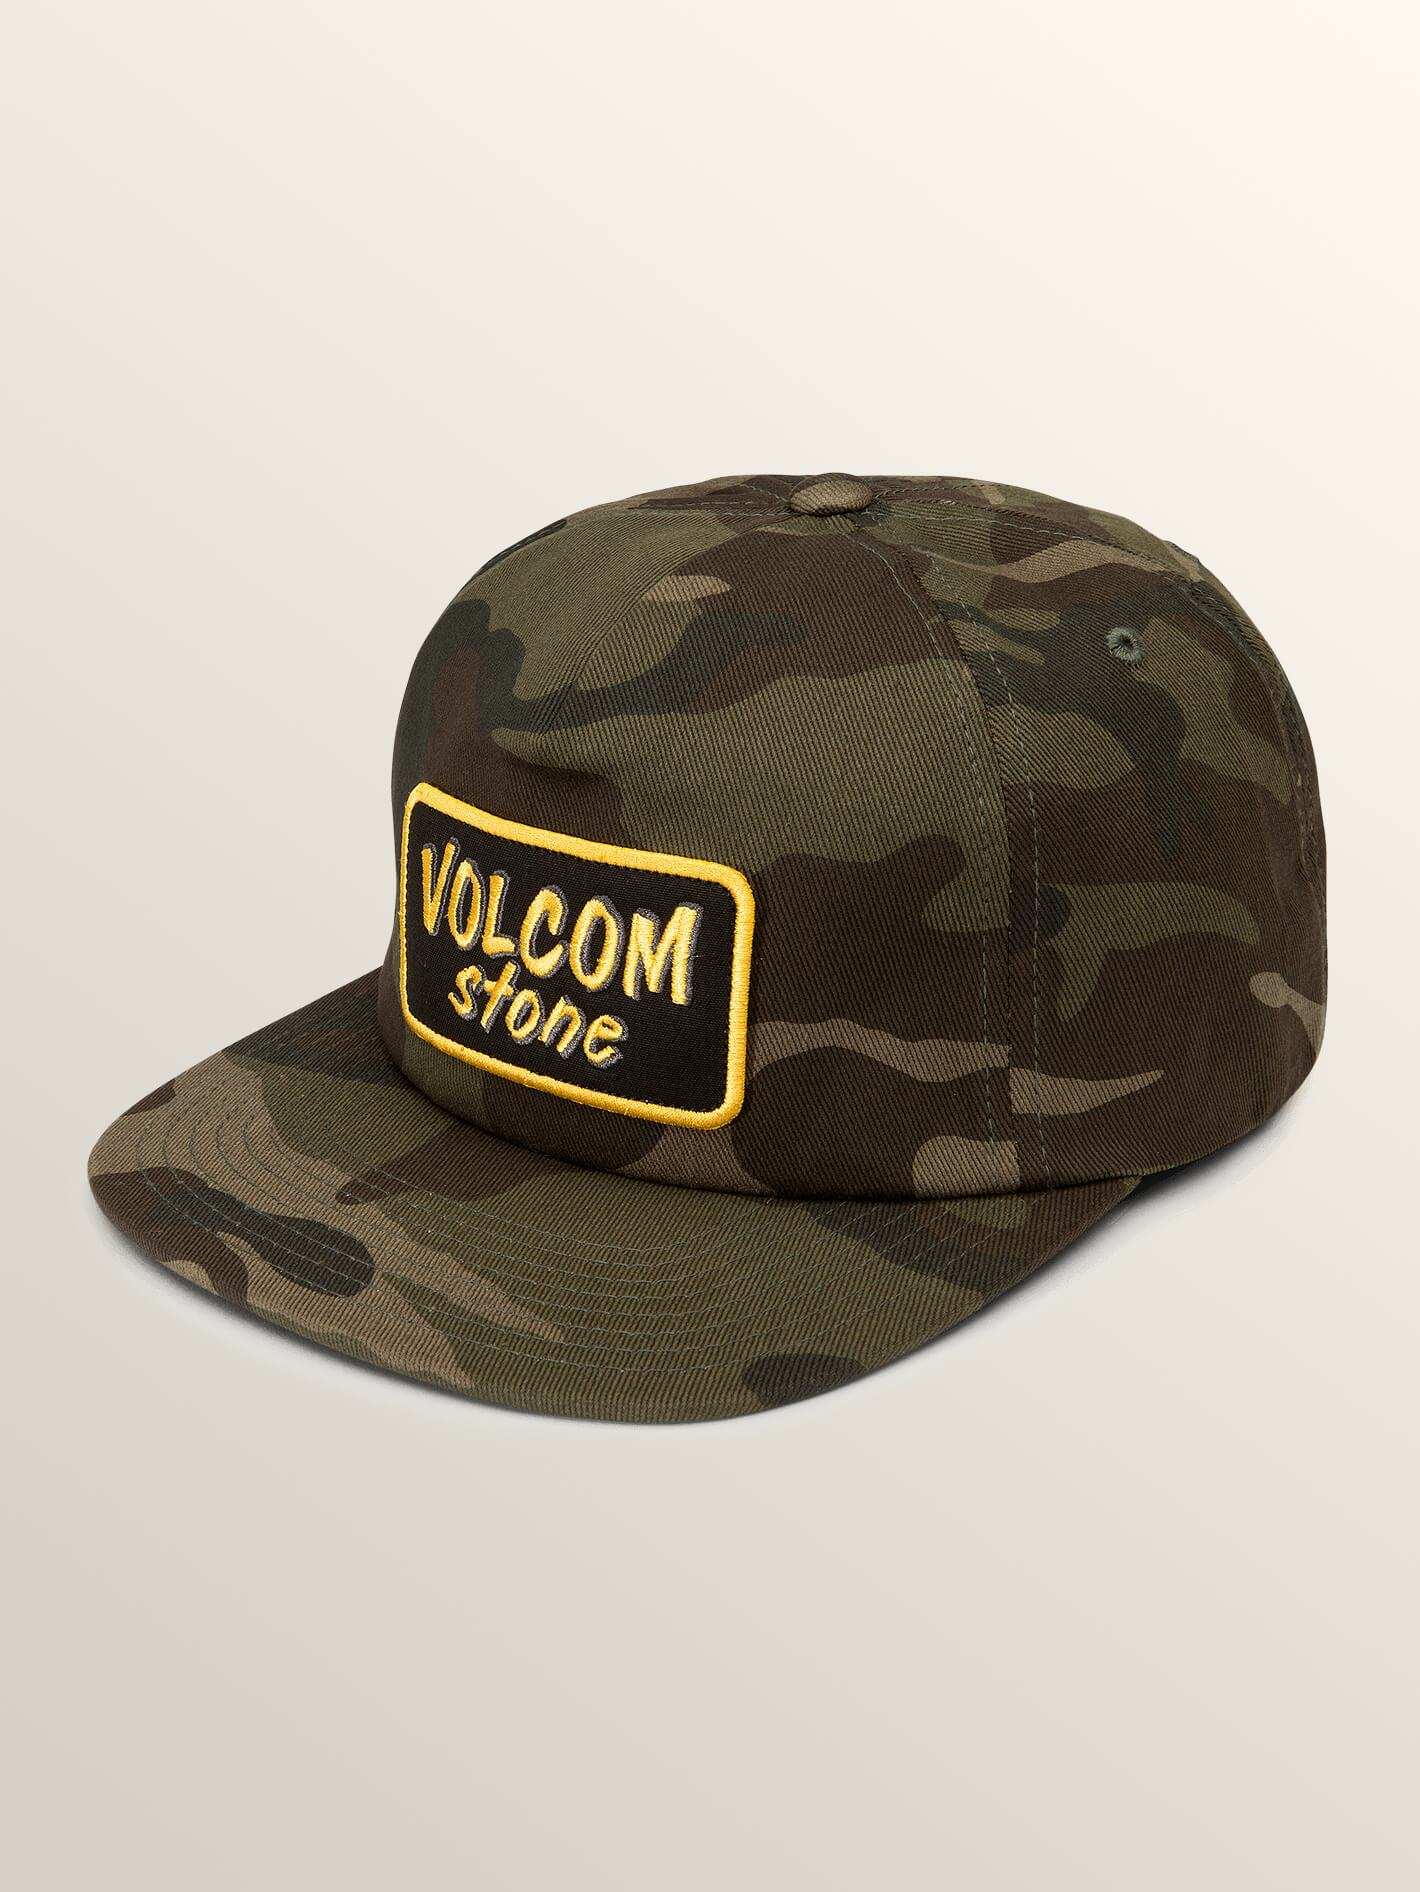 competitive price 09784 0cc41 ... promo code for utility hat volcom 94480 d522c